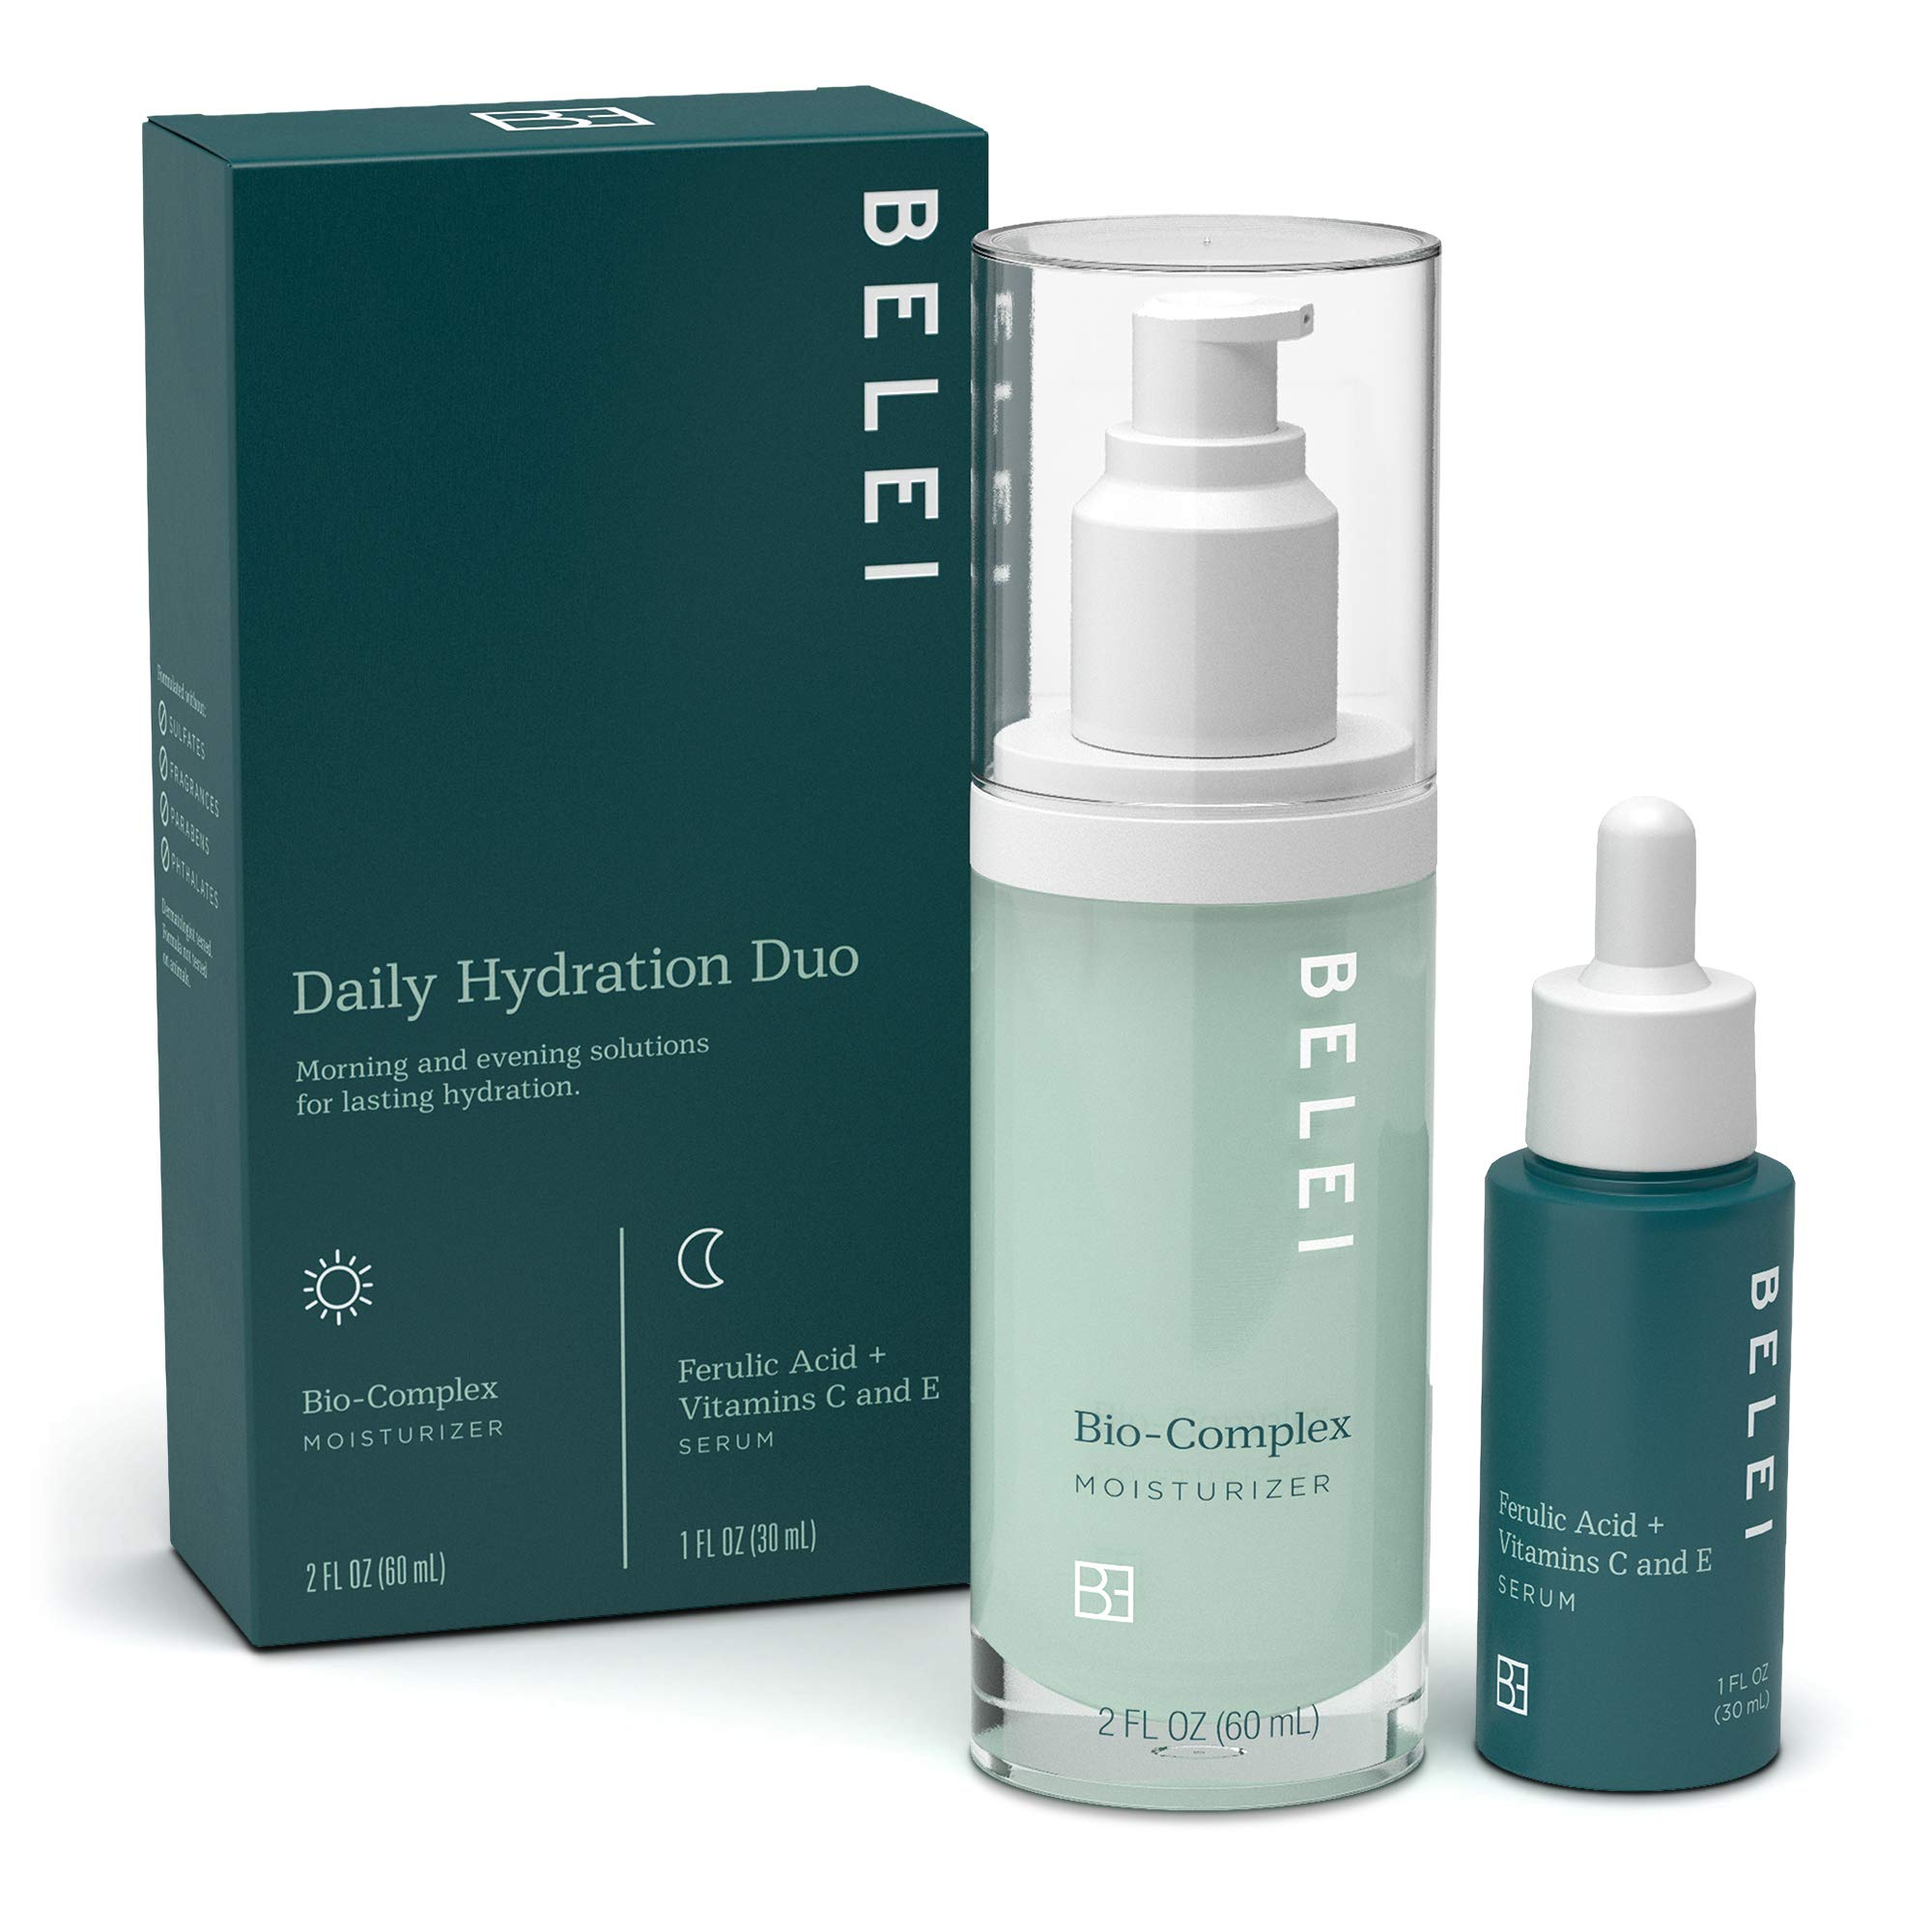 Belei by Amazon: 'Daily Hydrating' Duo Skin Care Starter Kit (Bio-Complex Moisturizer and Ferulic Acid + Vitamins C & E) Helps with Fine Lines, Hydration, and Uneven Skin Tone